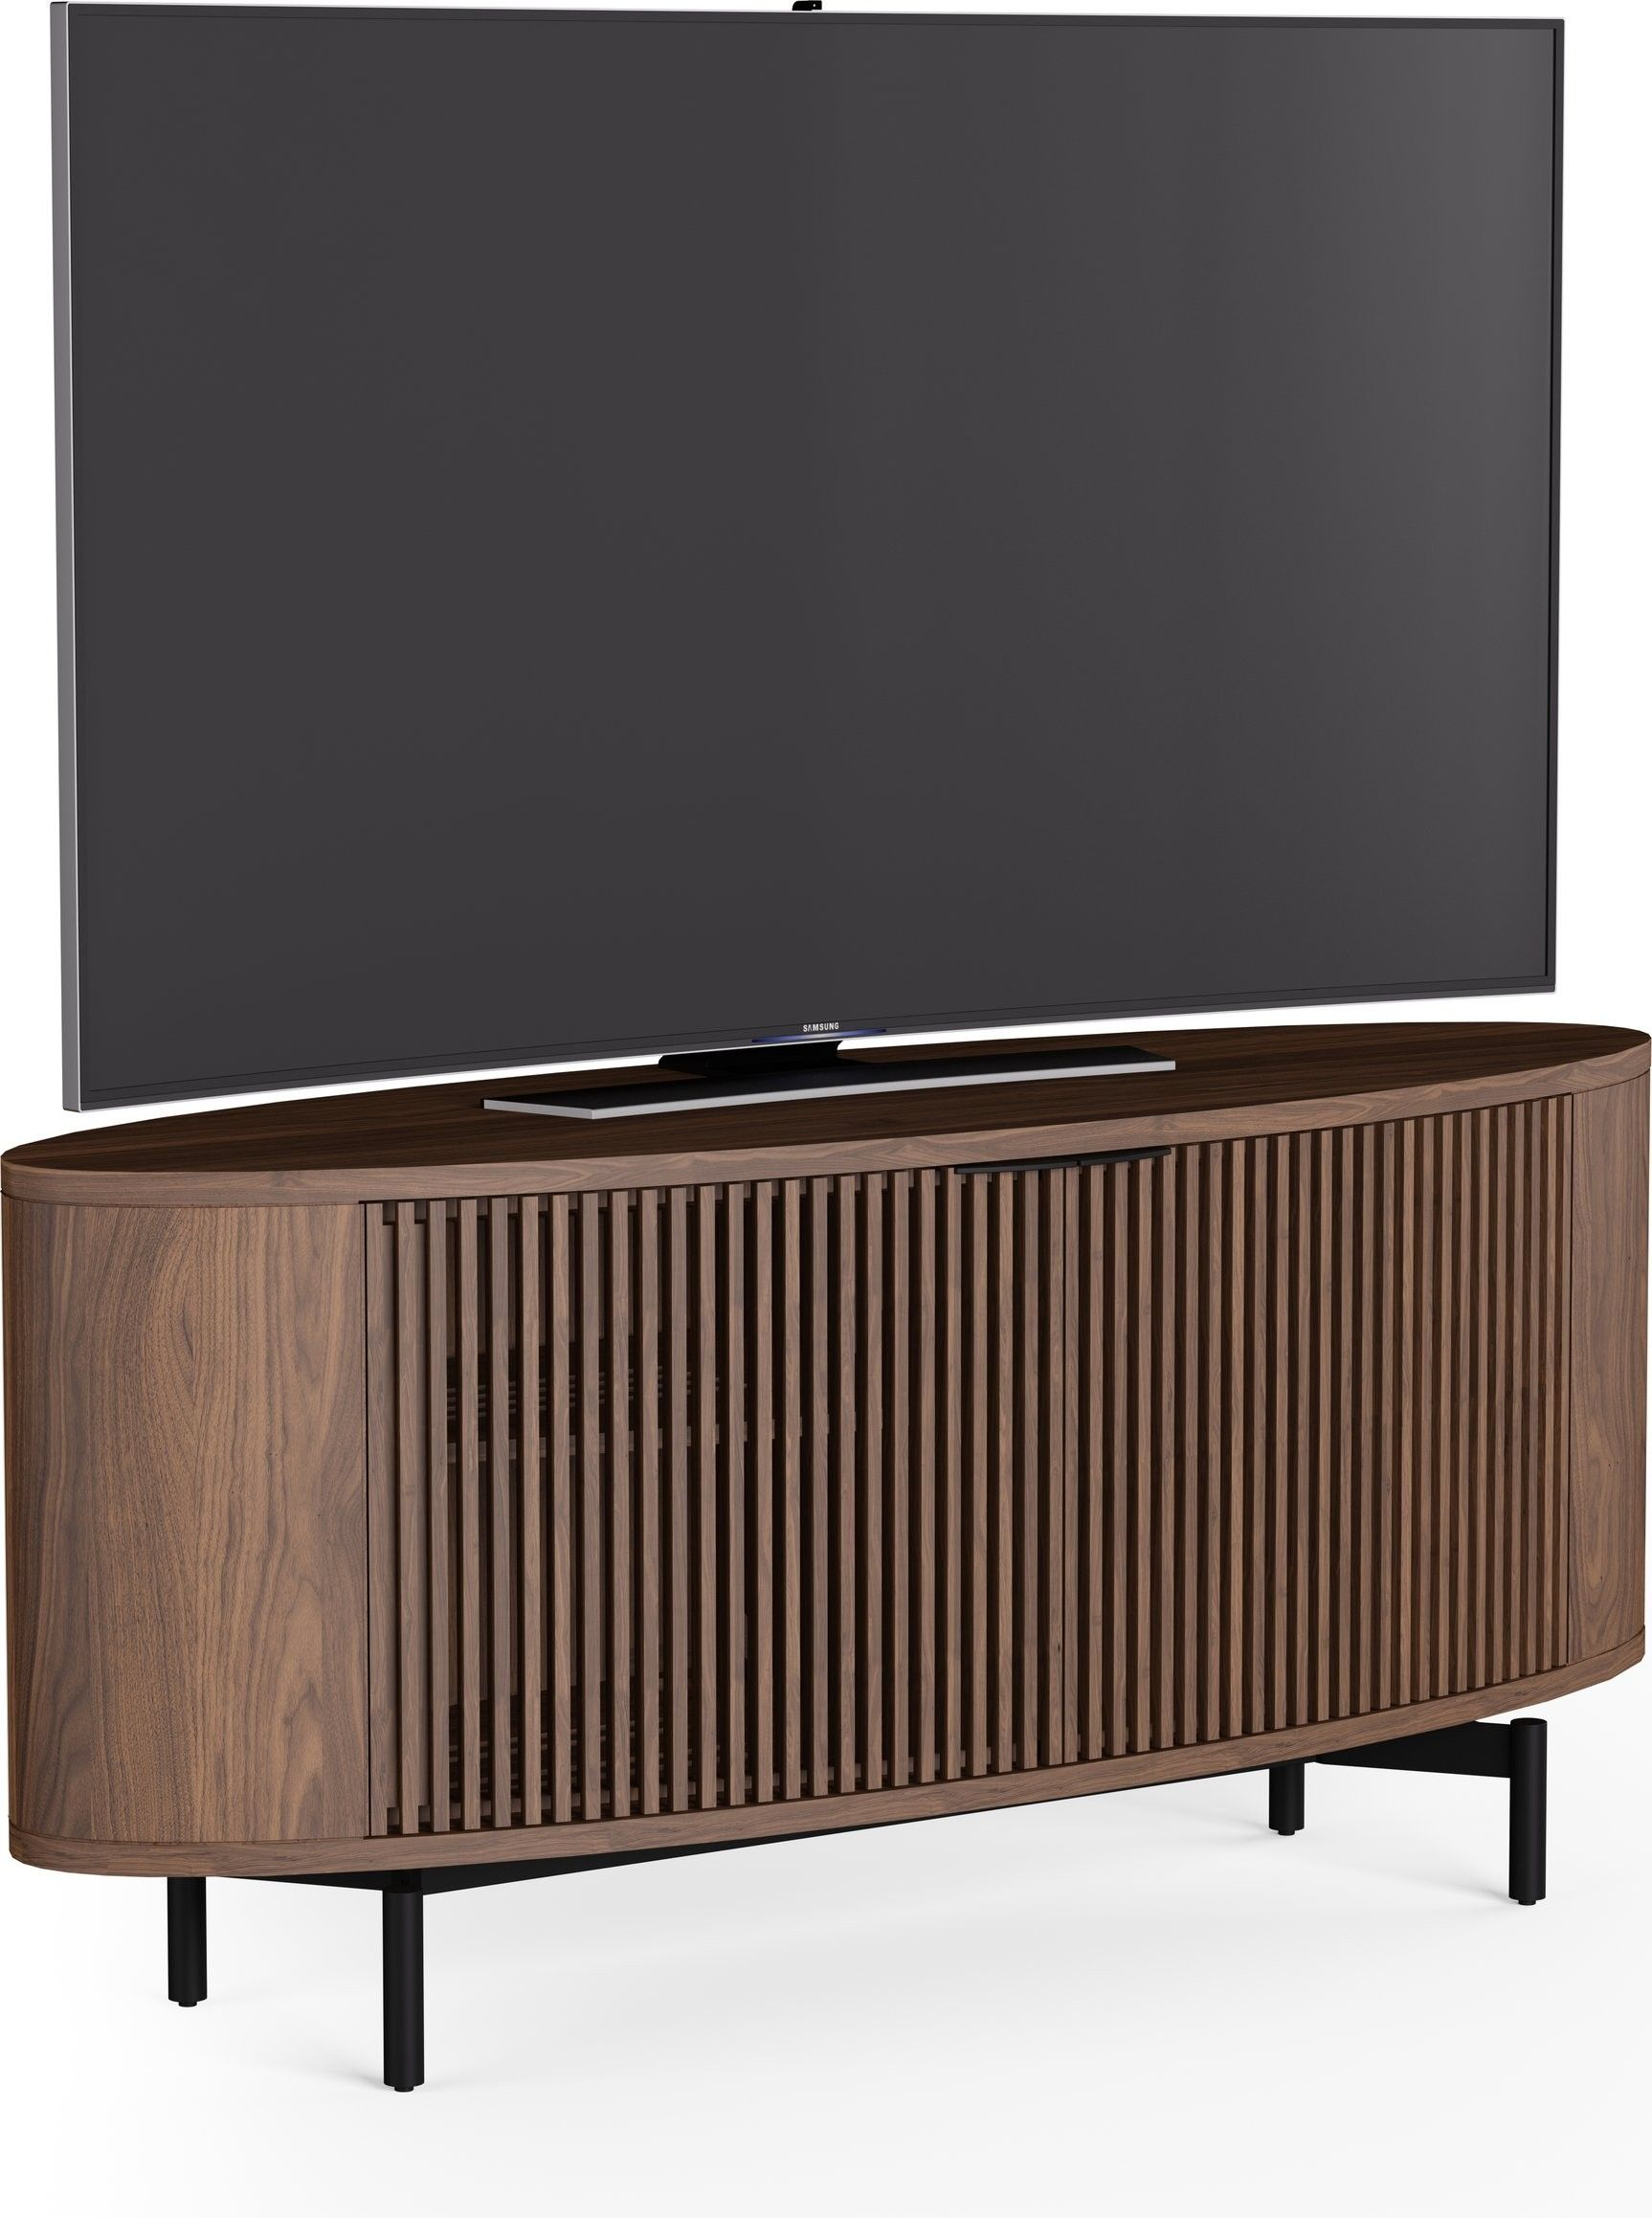 BDI s new 2018 Olis media cabinet with a soundbar platform flow